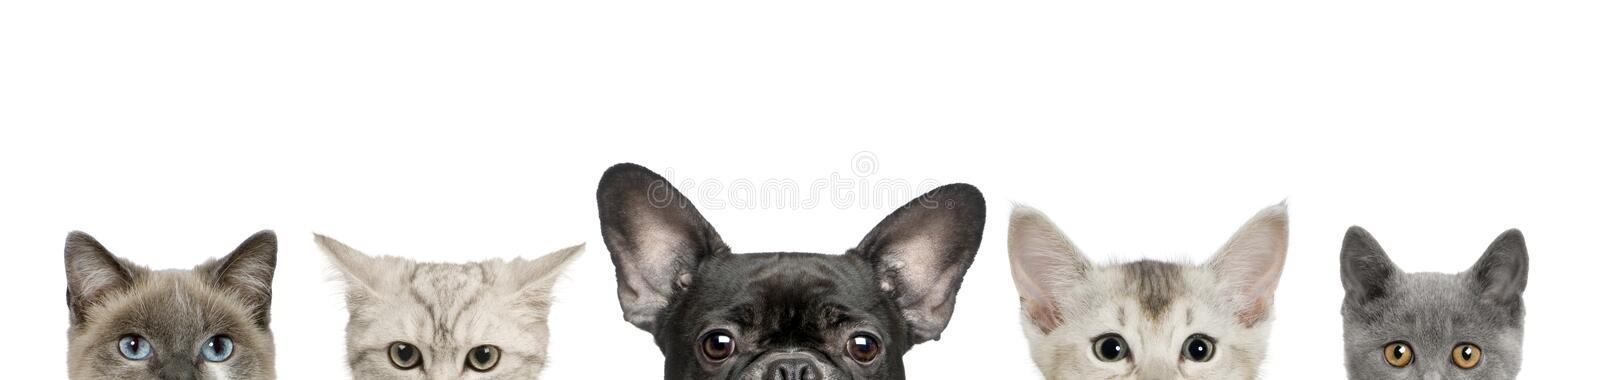 Dog head and cat heads royalty free stock images